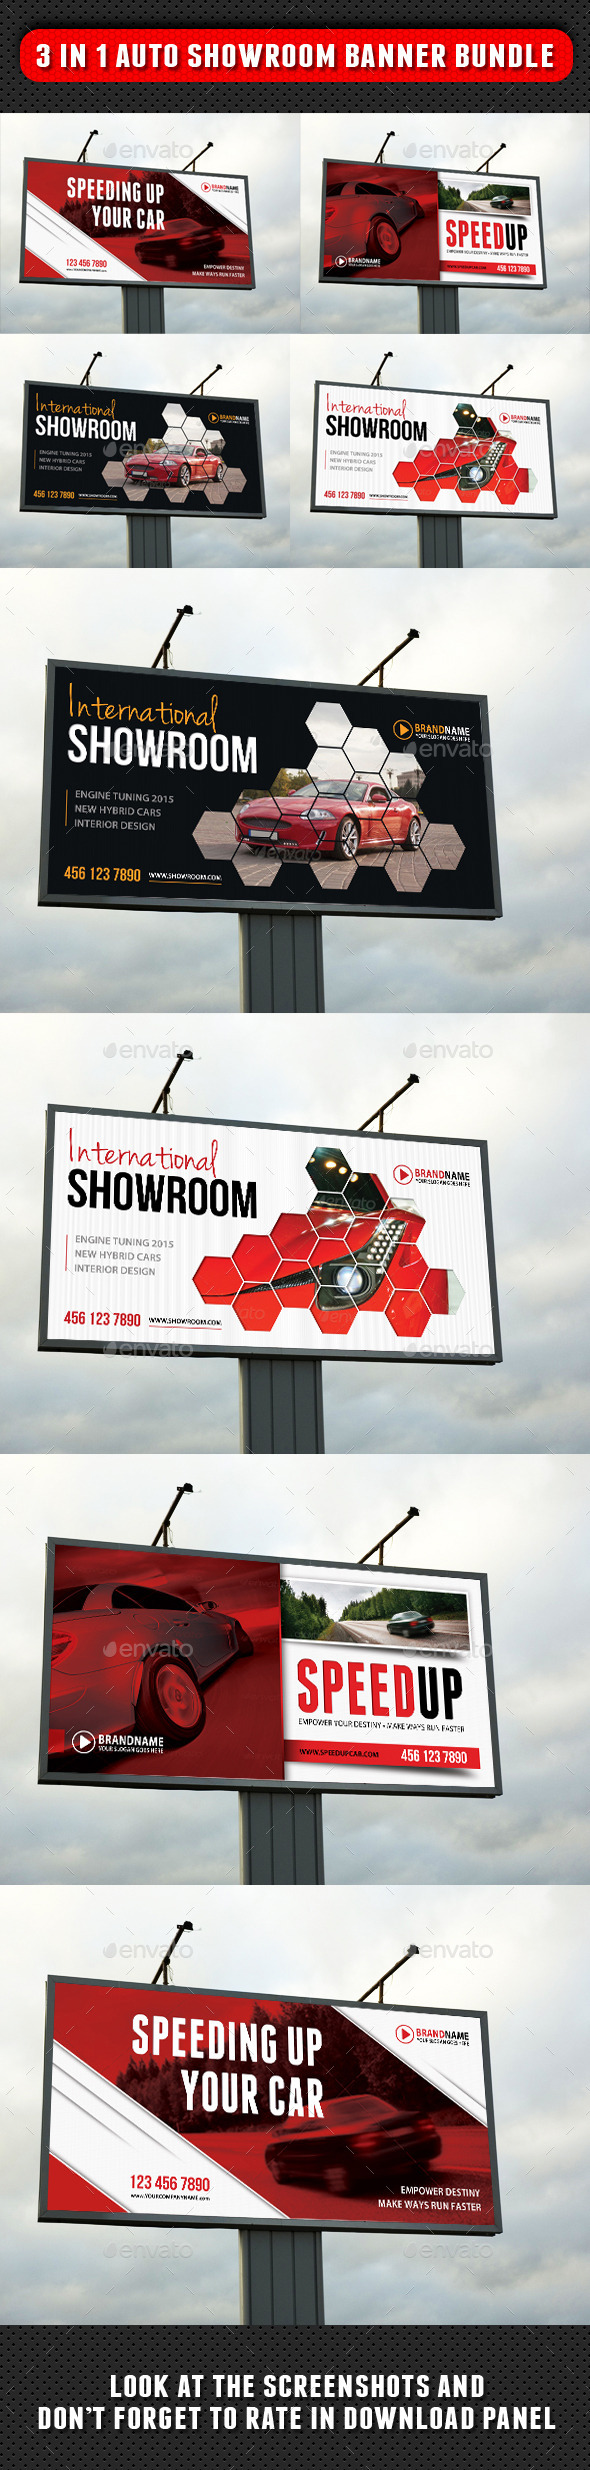 3 in 1 Auto Showroom Outdoor Banner Bundle - Signage Print Templates